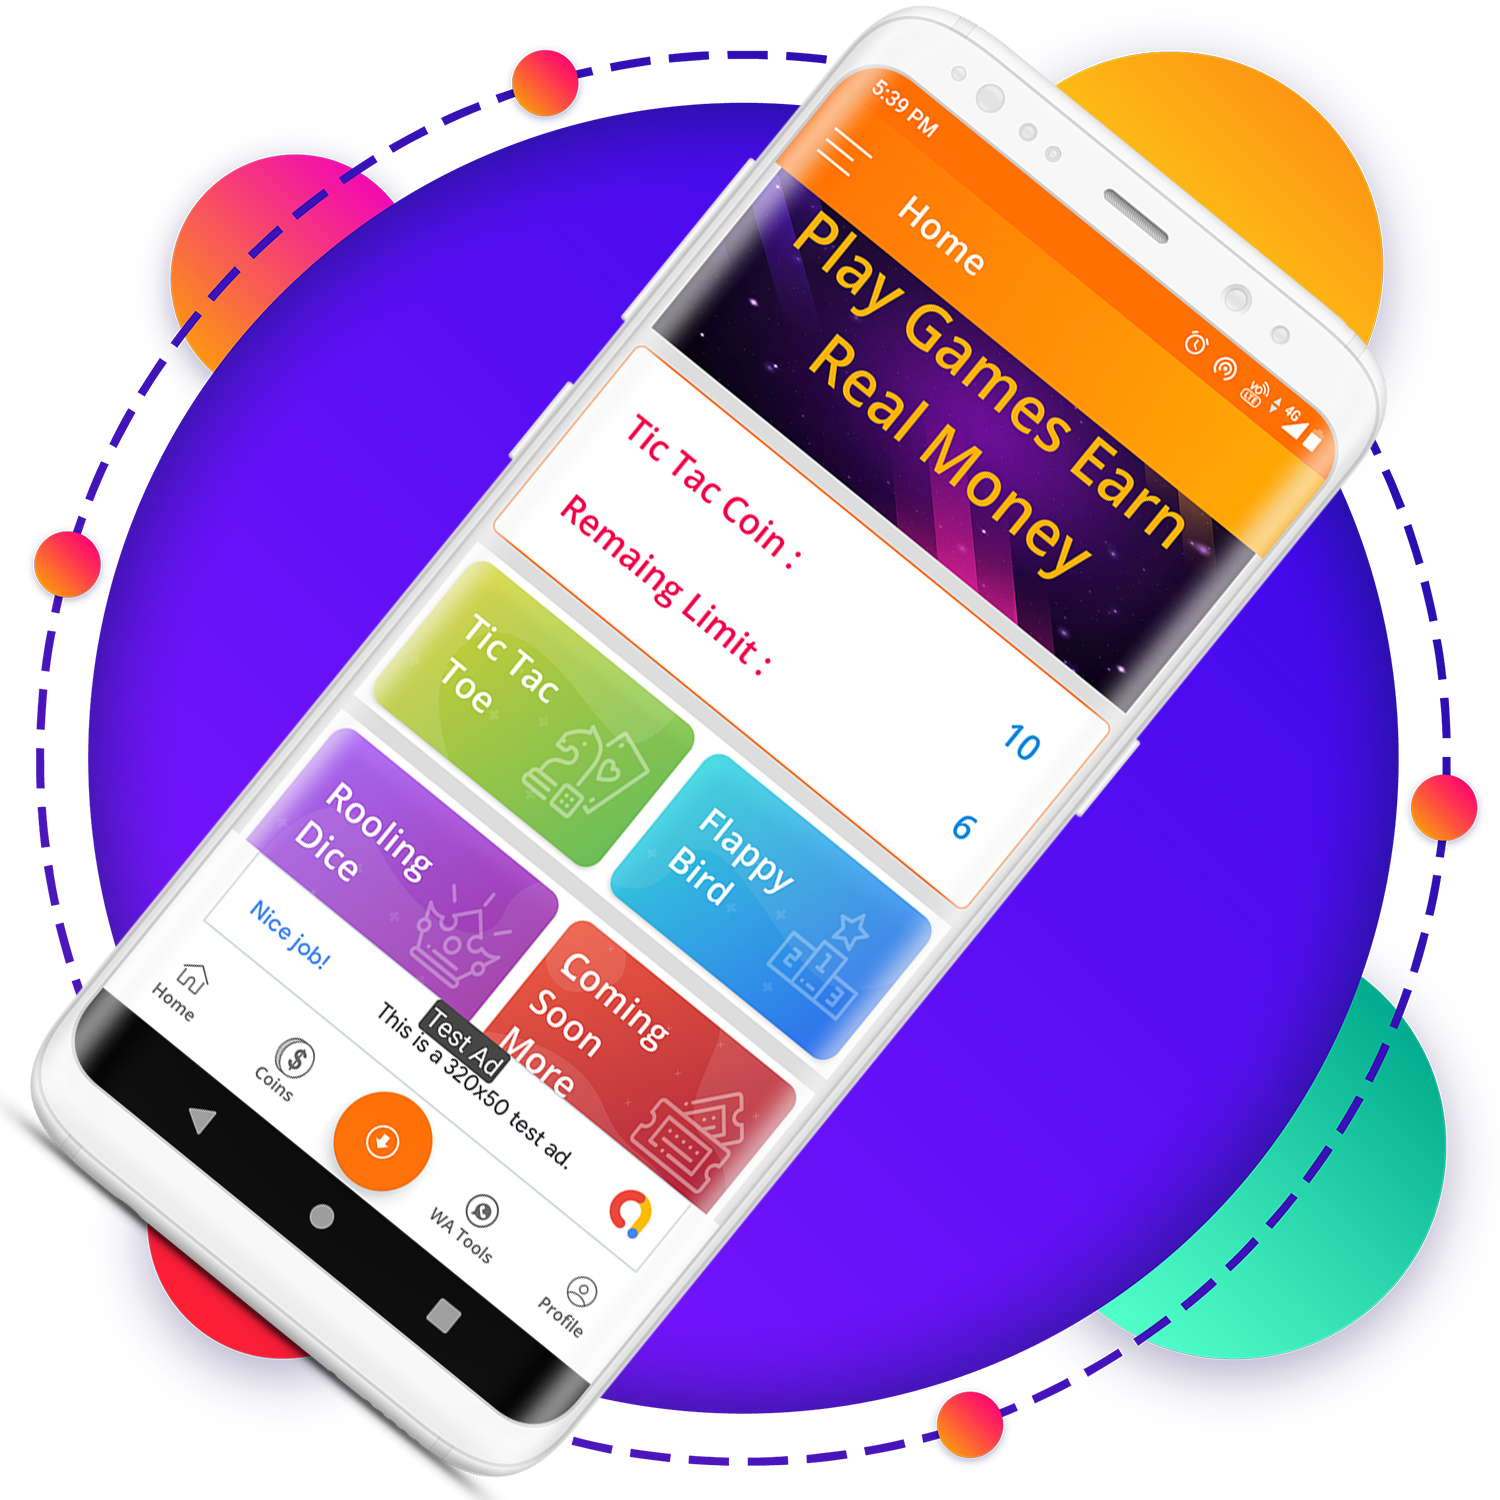 QuickCash All In One Money Earning Android App + Games + WhatsApp Tools + Earning System Admin Panel - 9